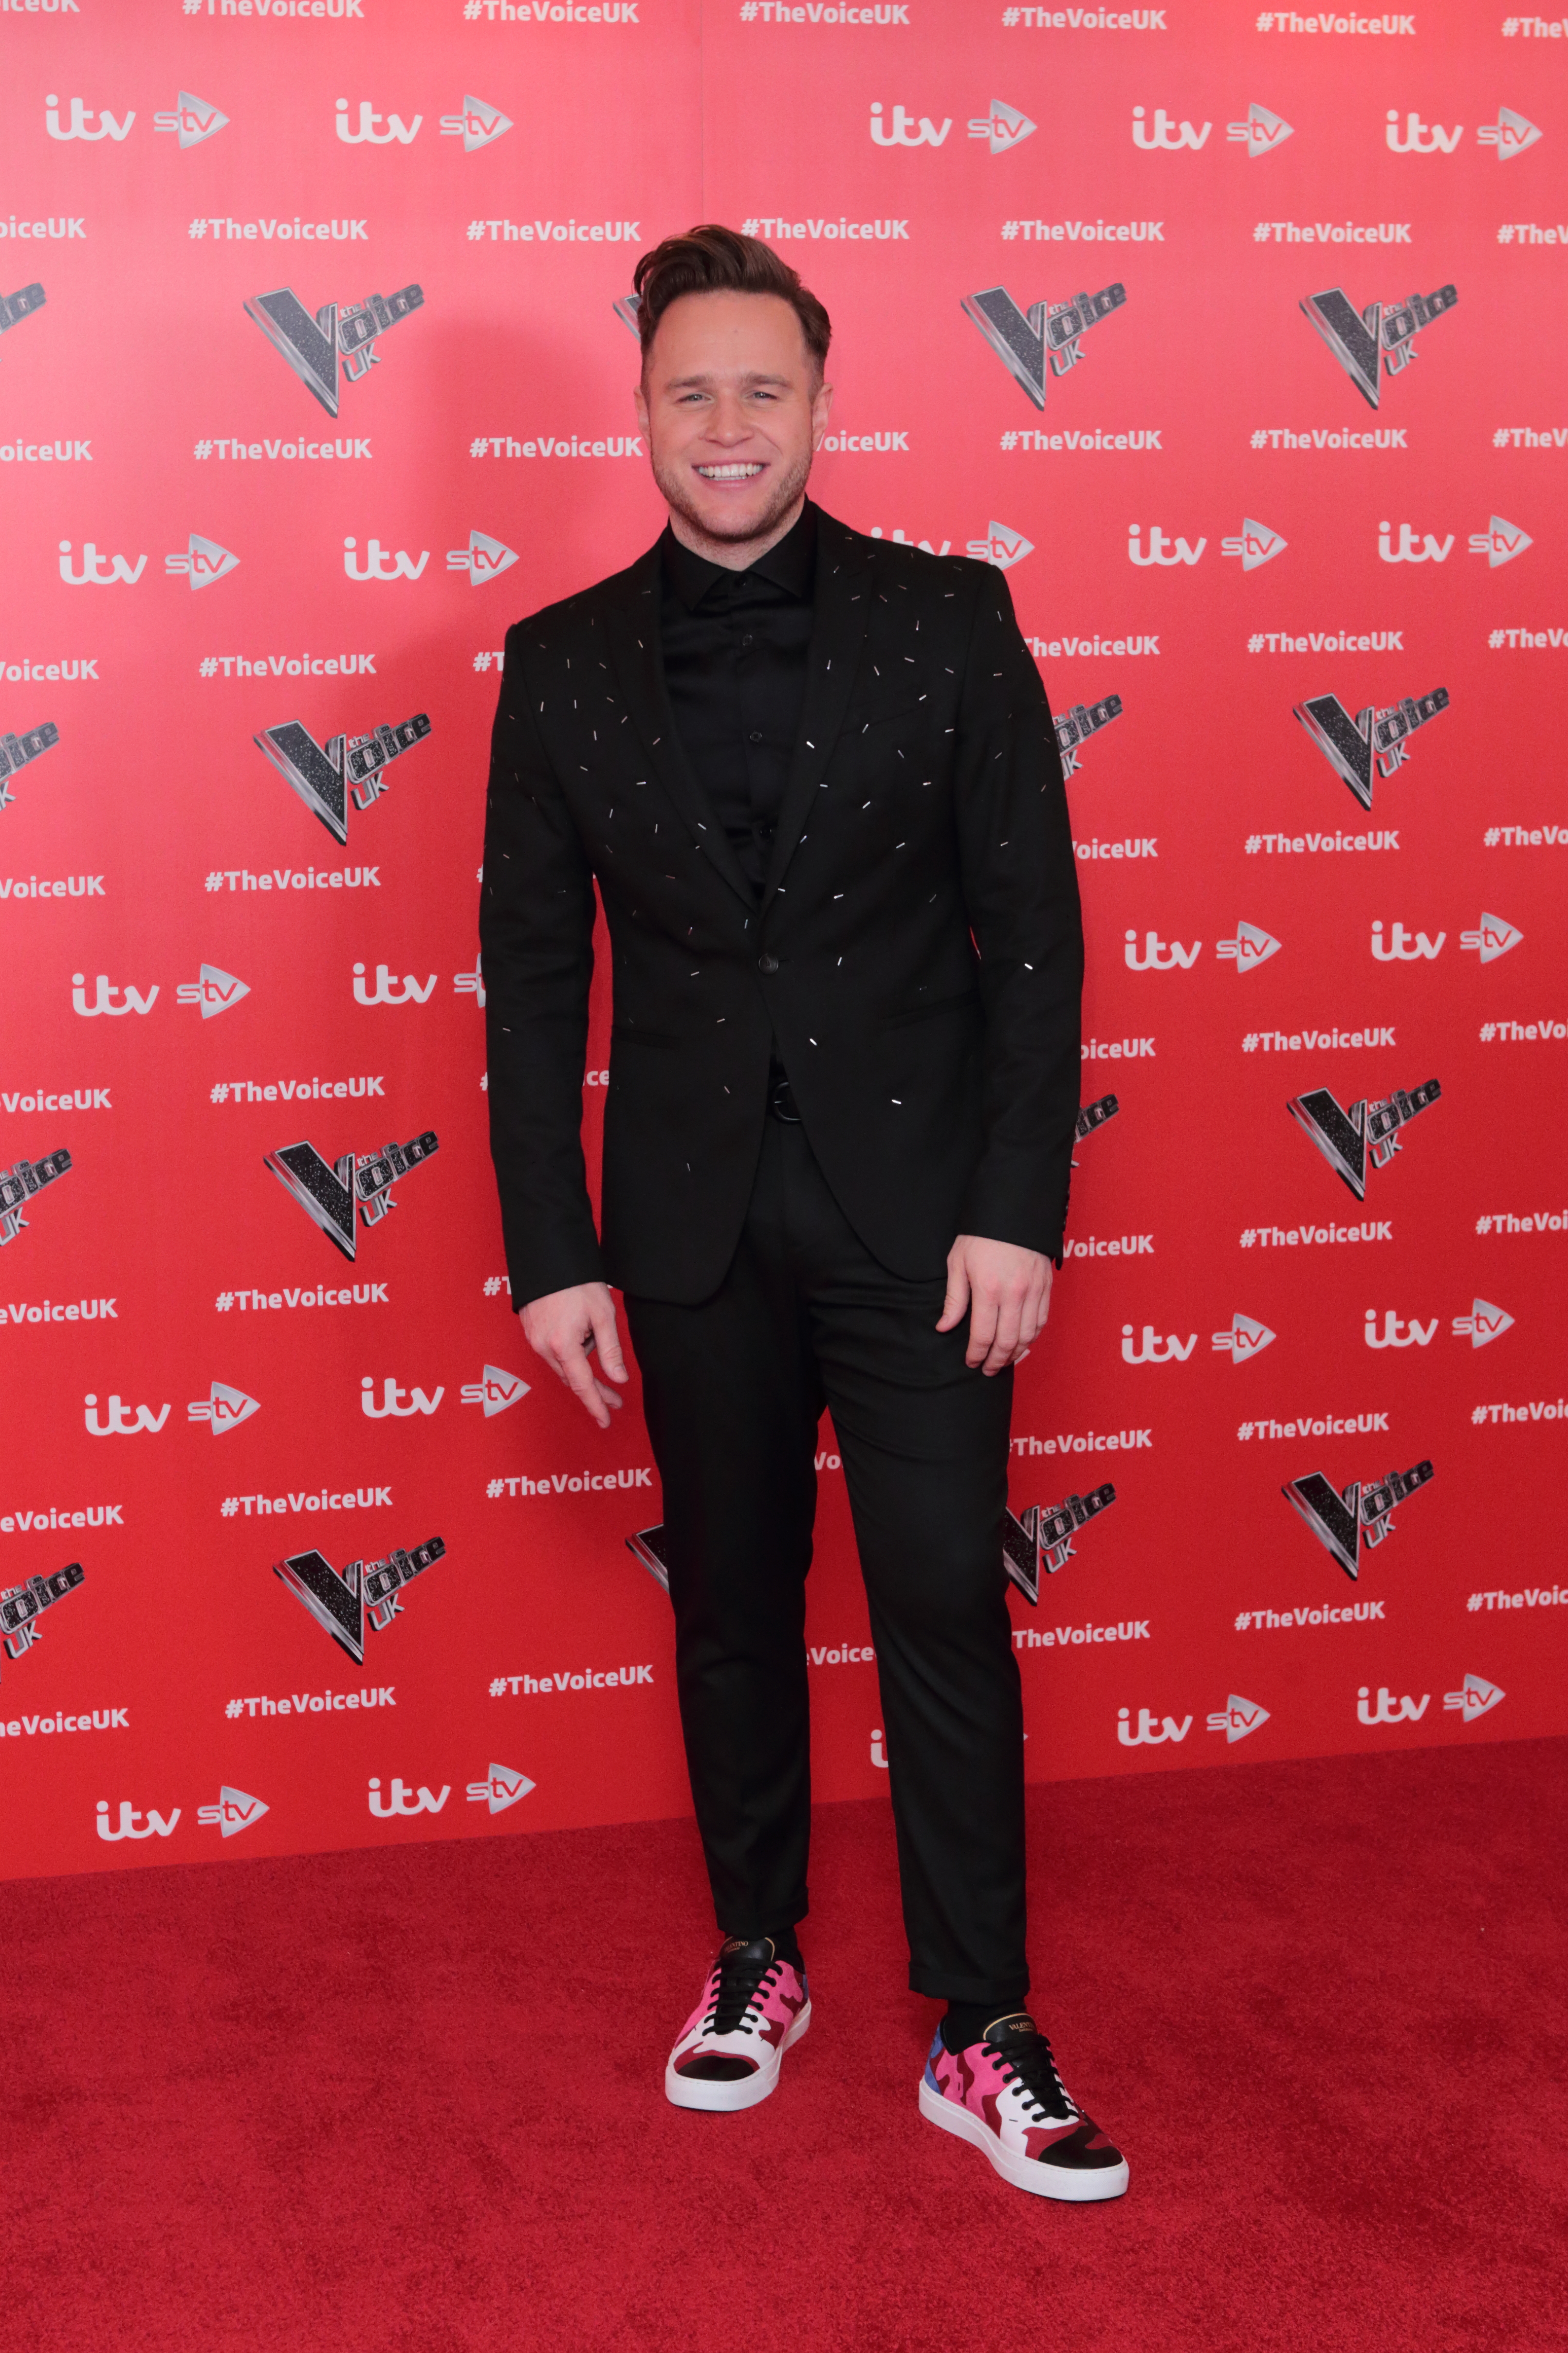 Olly Murs at 'The Voice' 2019 Photocall